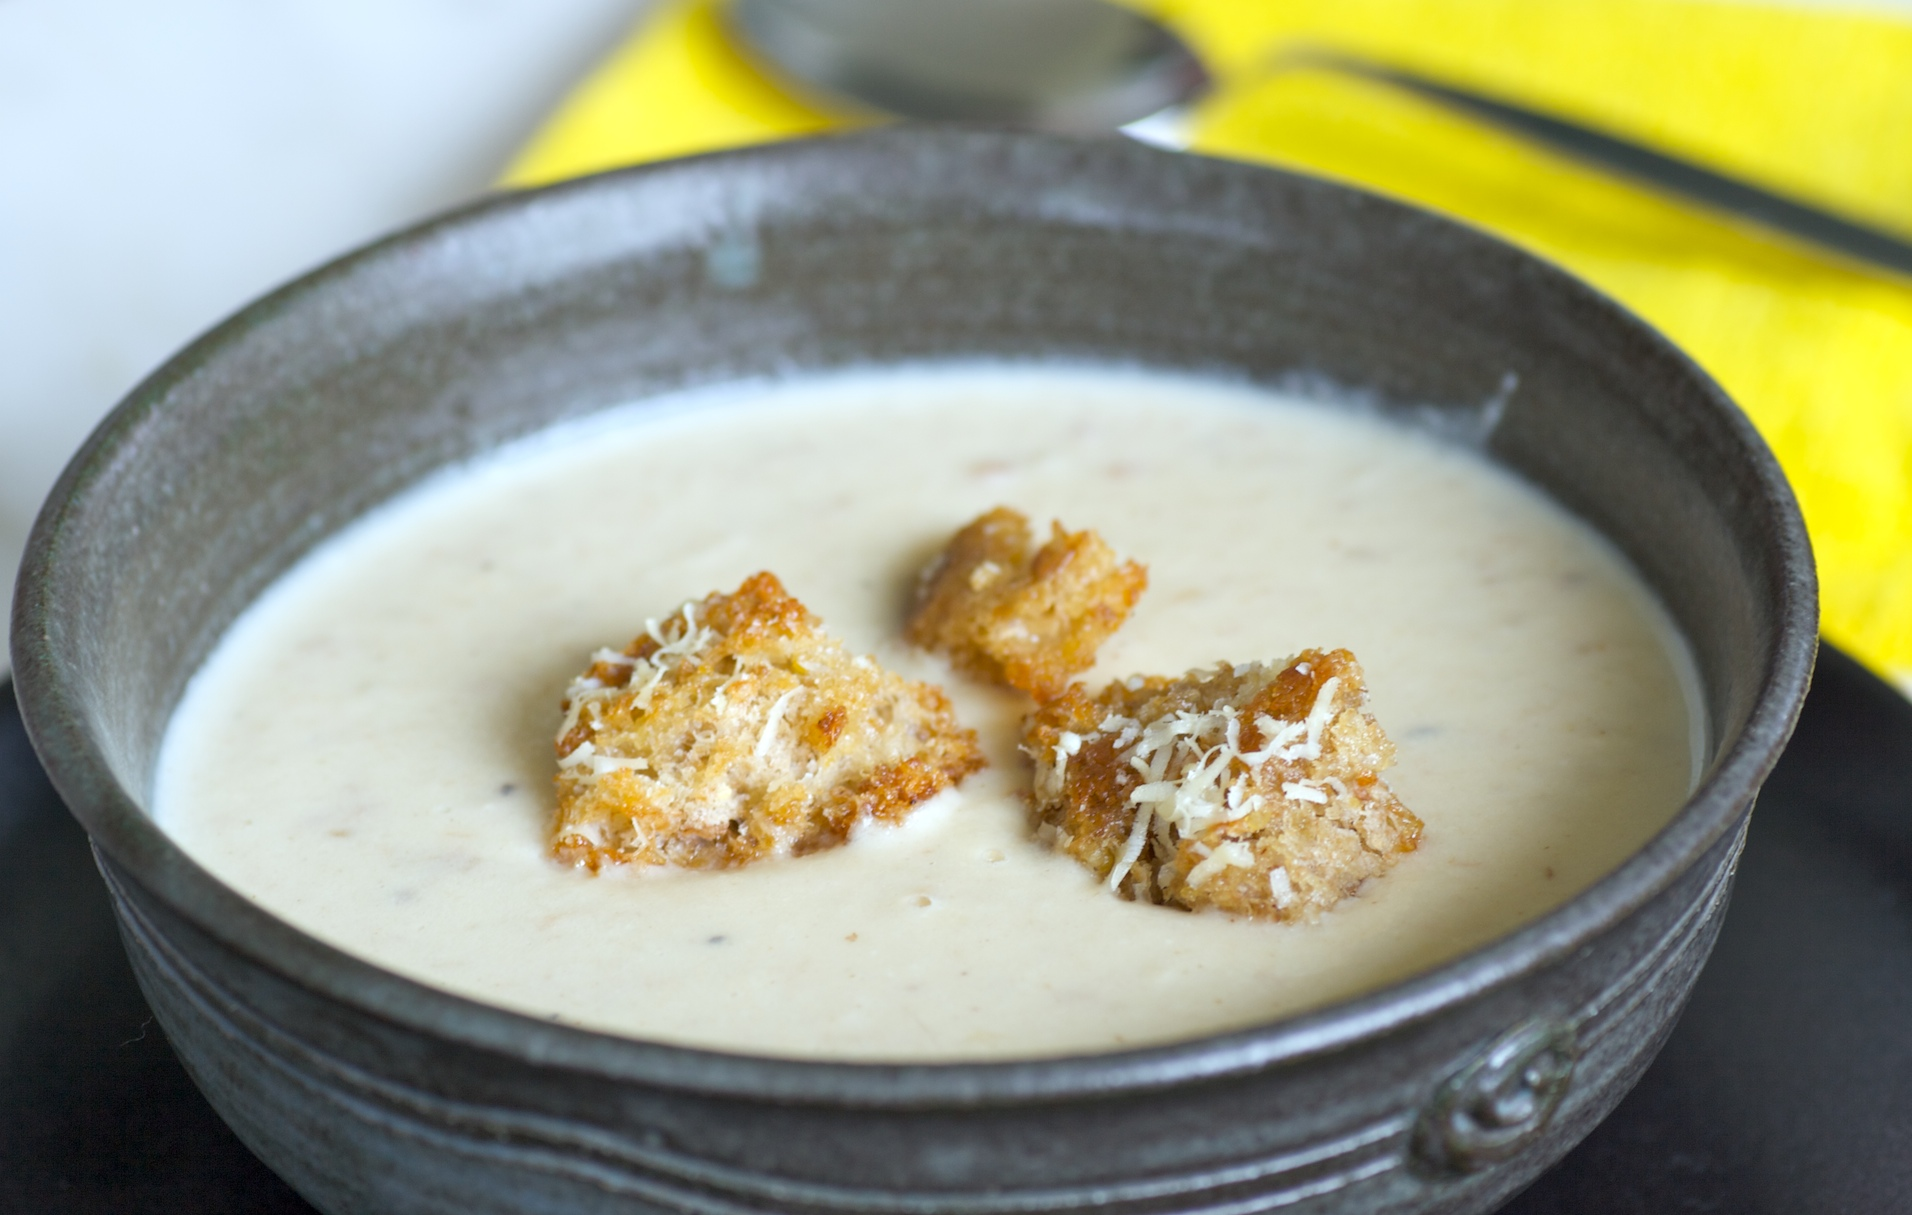 ... cauliflower soup purple cauliflower soup cheddar and cauliflower soup